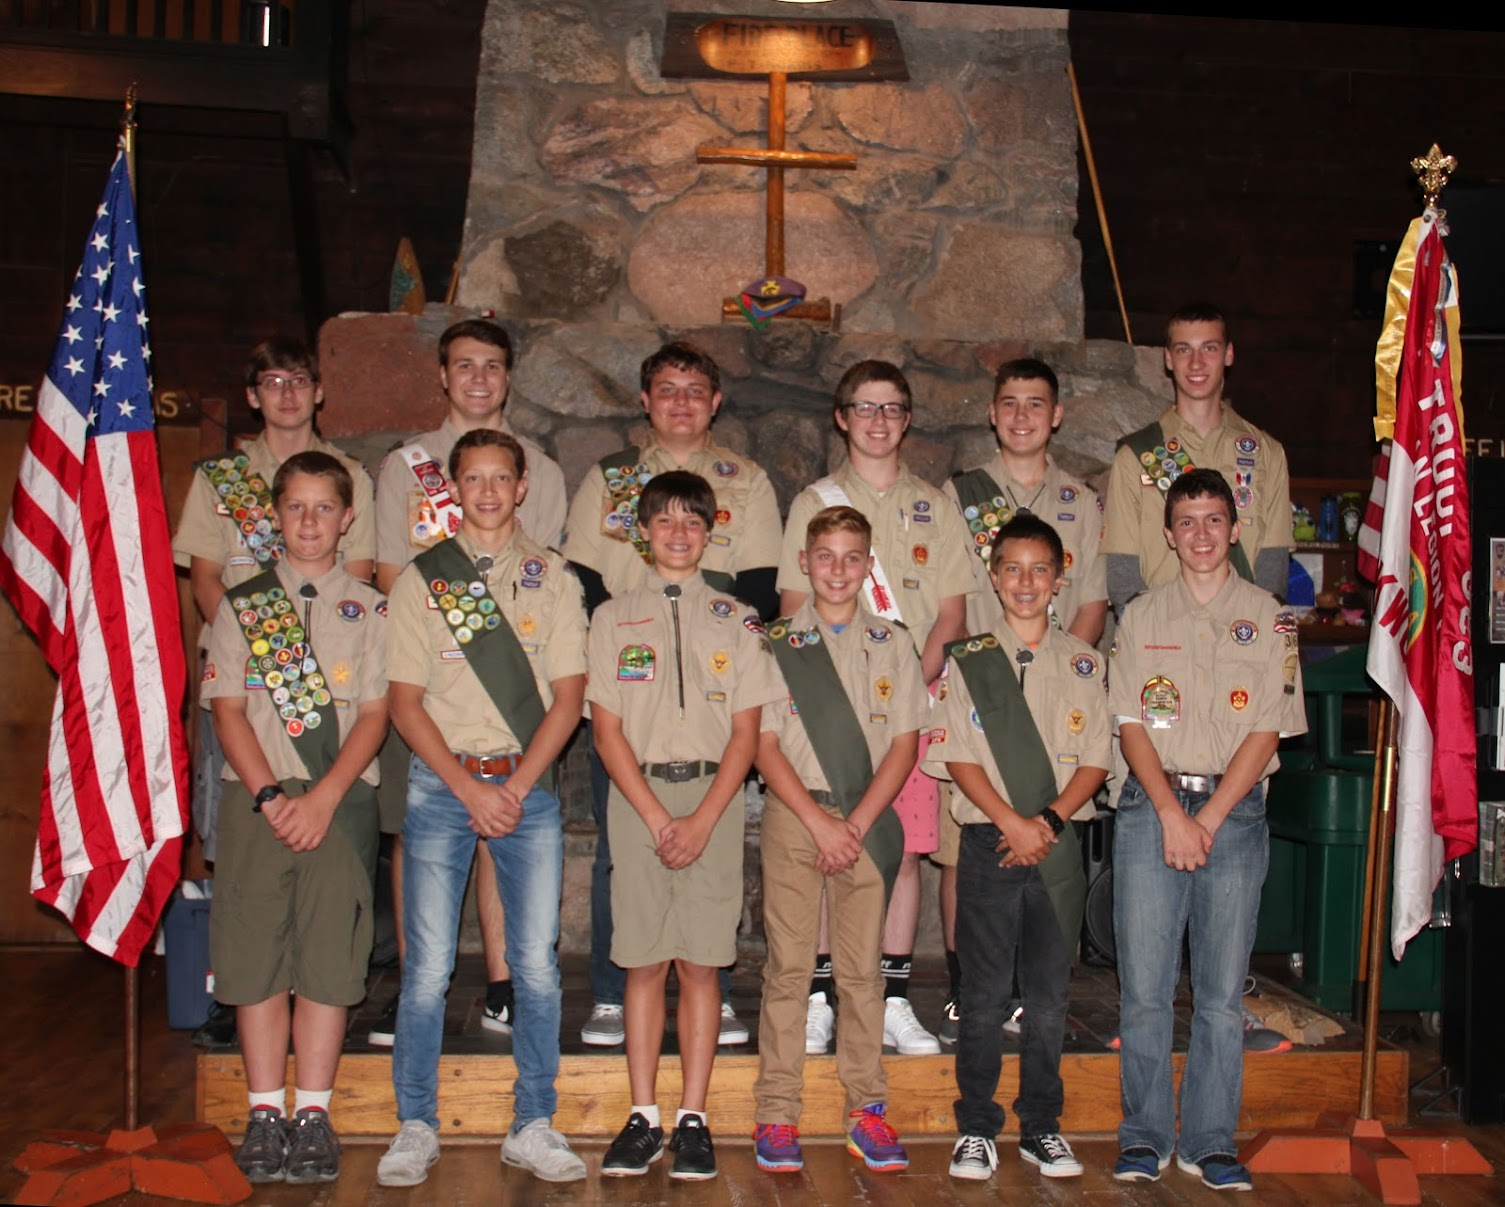 The Scouts in Troop 363